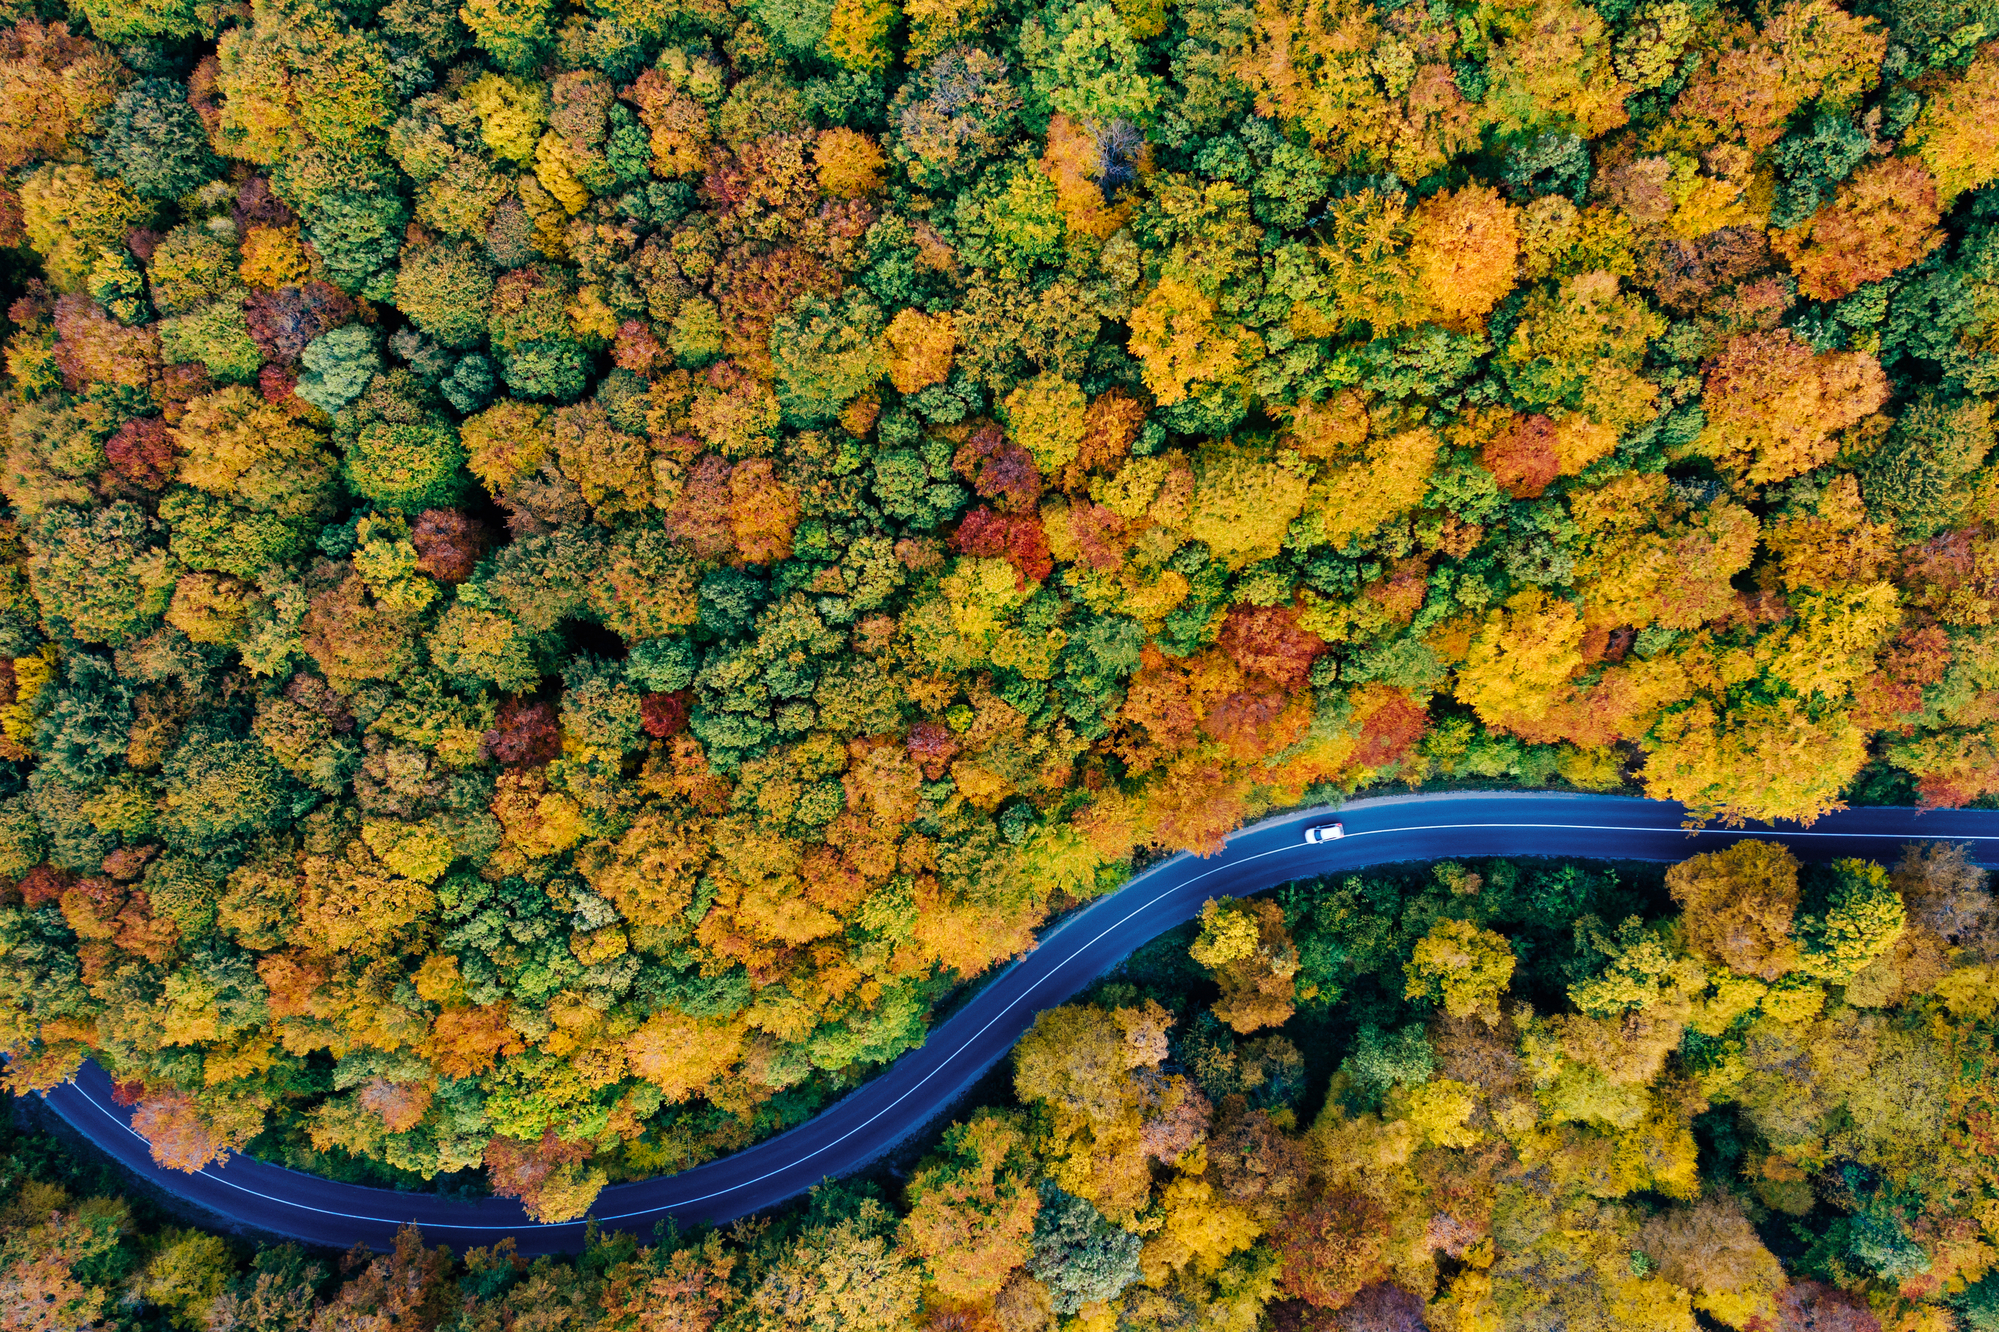 Drone view of a forest and a serpentine road autumn